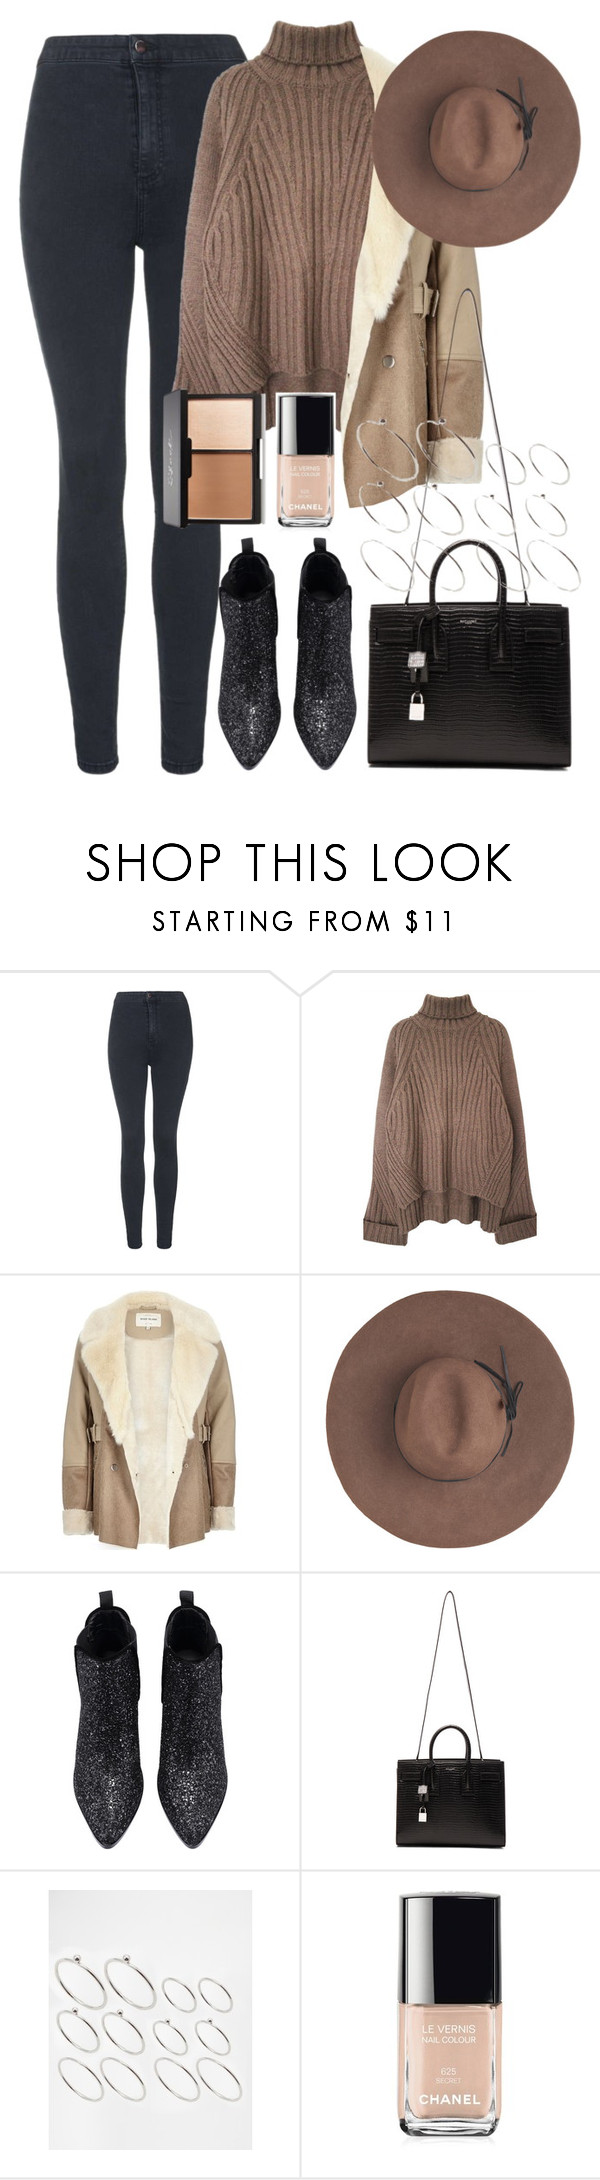 """""""Untitled #767"""" by rguelsah ❤ liked on Polyvore featuring Topshop, River Island, Eugenia Kim, Yves Saint Laurent, ASOS, Chanel, women's clothing, women, female and woman"""